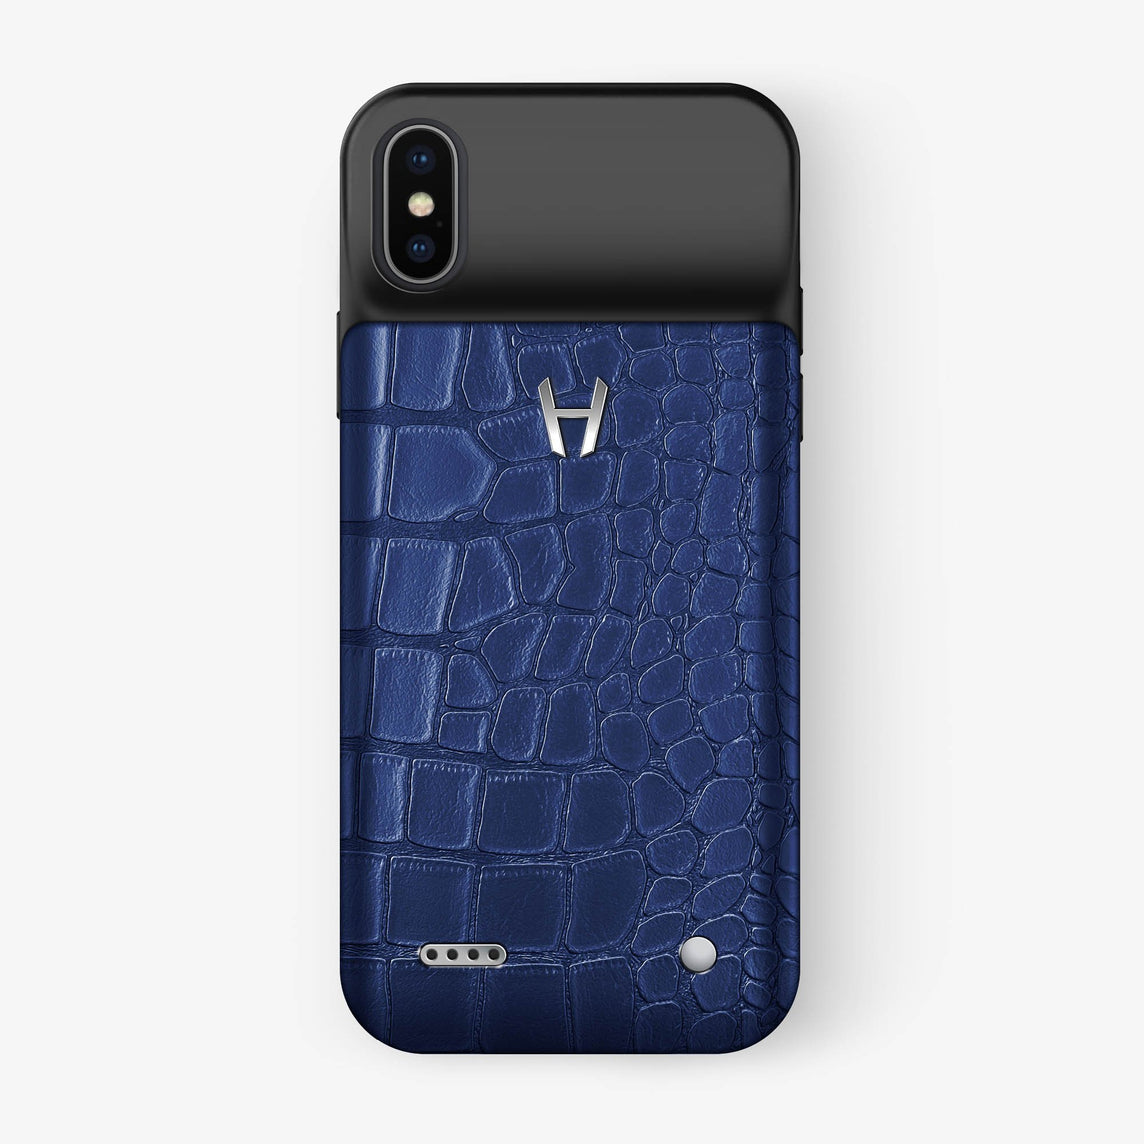 Alligator Battery Case iPhone X/Xs | Navy Blue - Stainless Steel - Hadoro